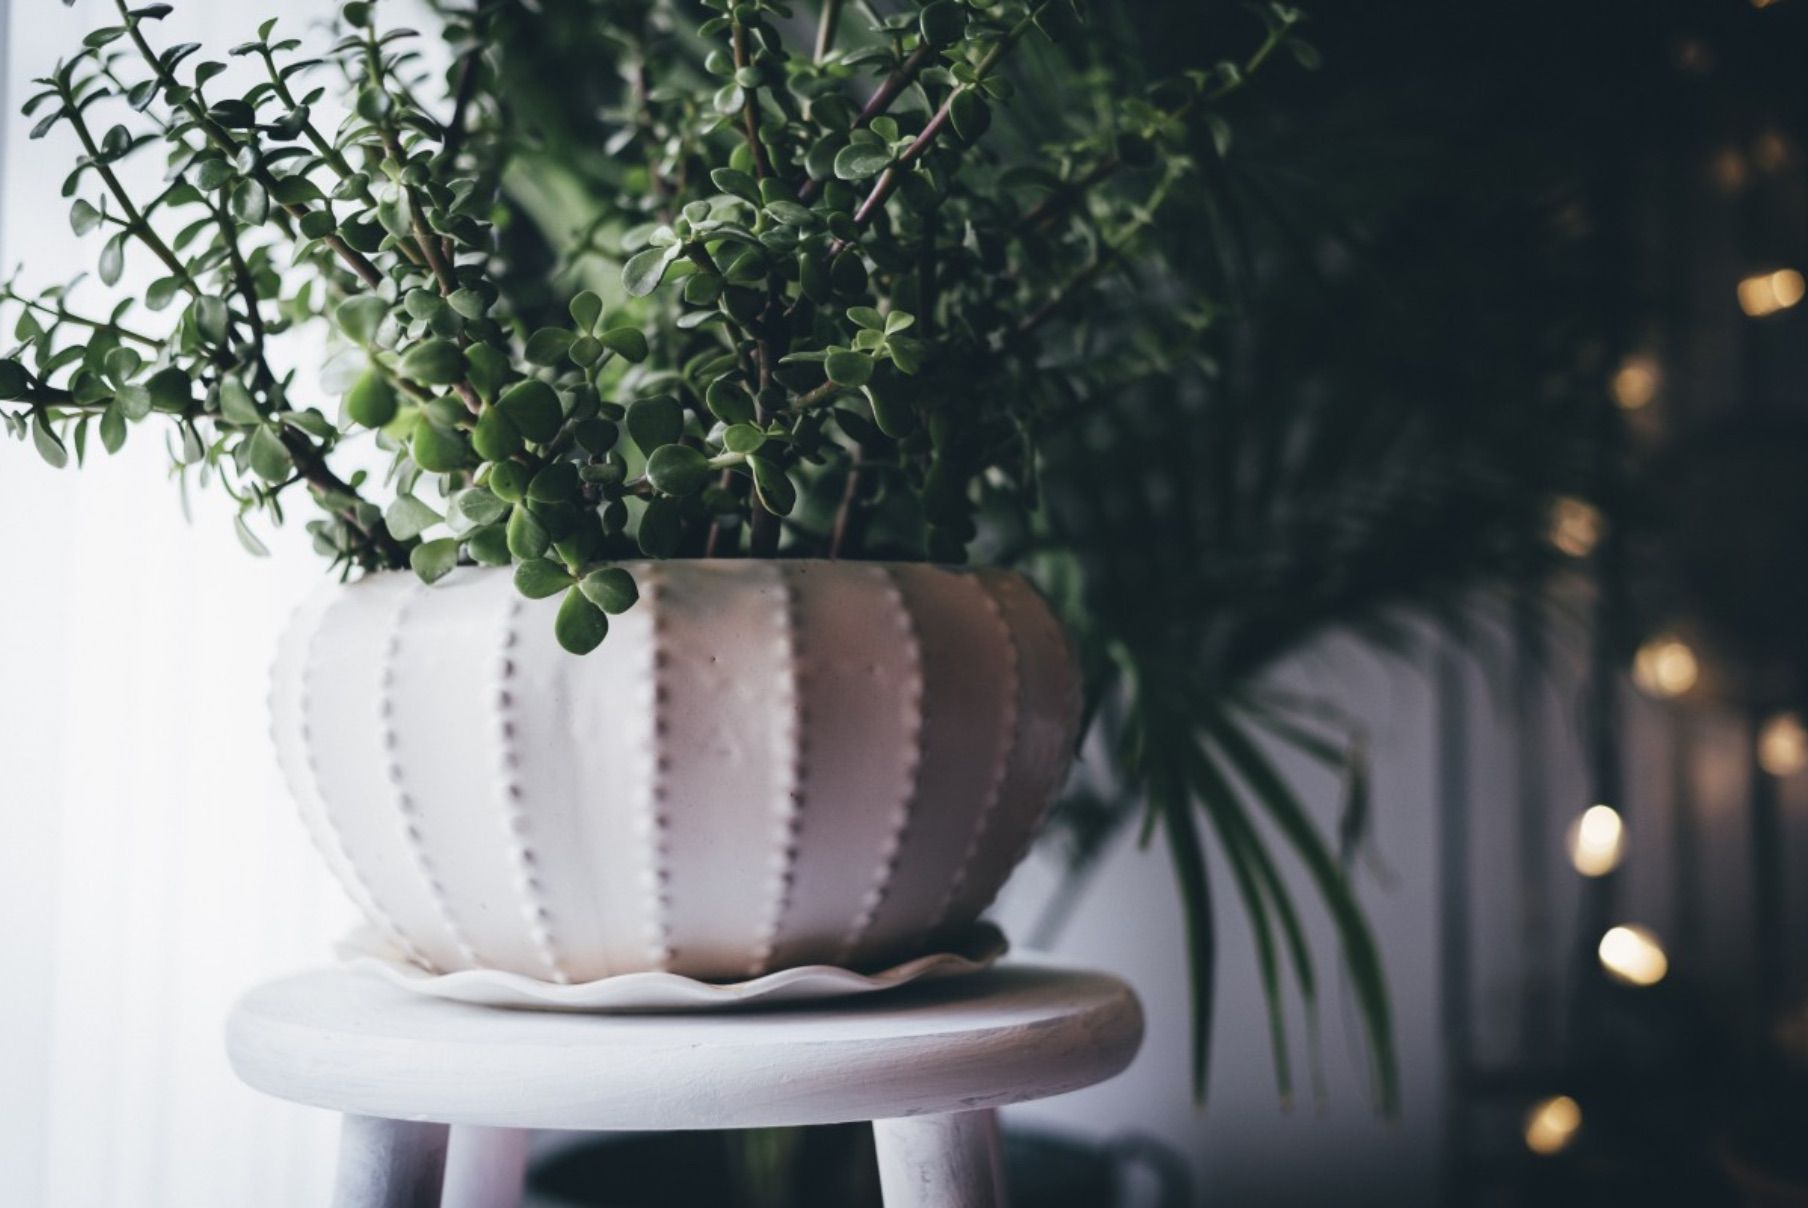 15 Houseplant Looks We're Loving Right Now